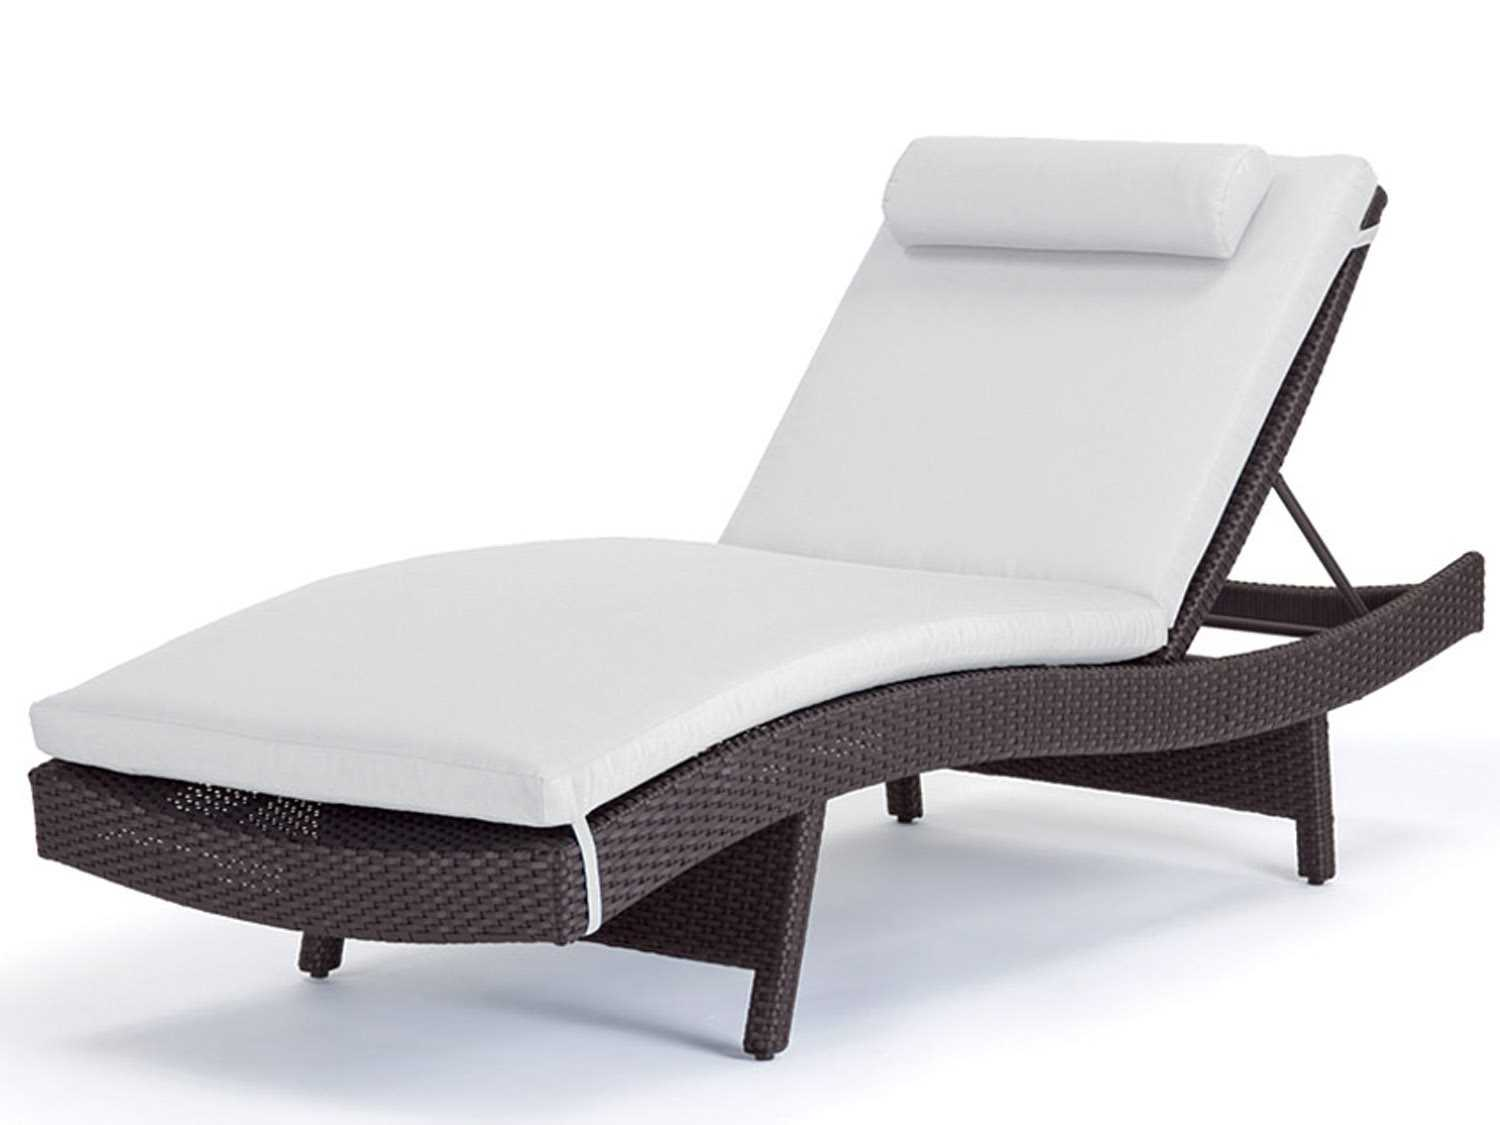 Caluco Dijon Curved Single Chaise Lounge